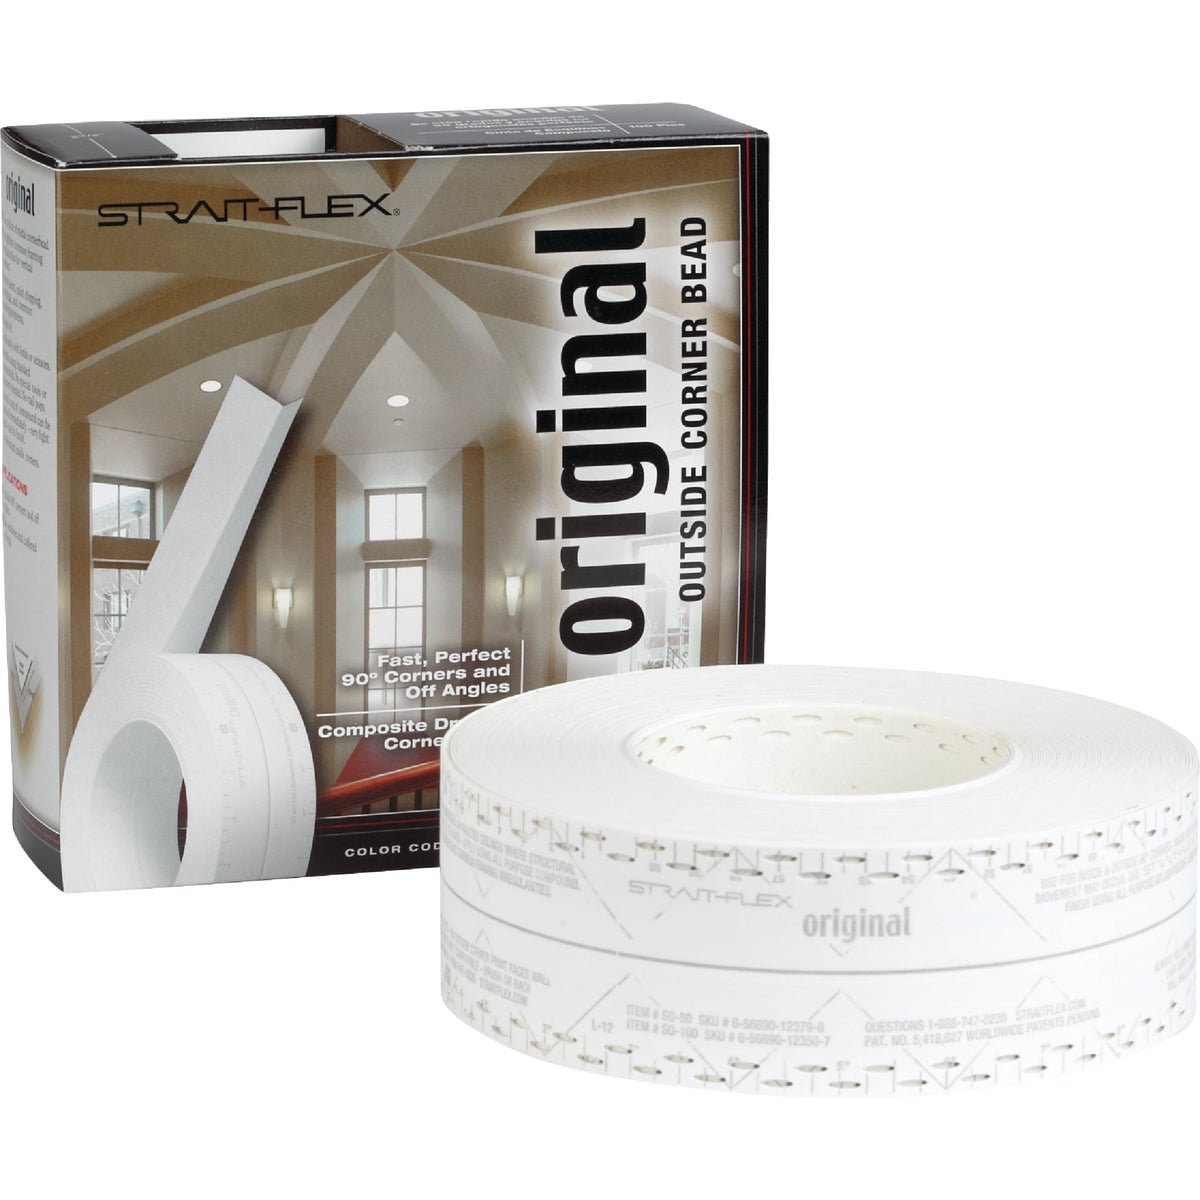 ORIGINAL DRYWL CRNR TAPE - SO-100 by Strait Flex Intl Inc